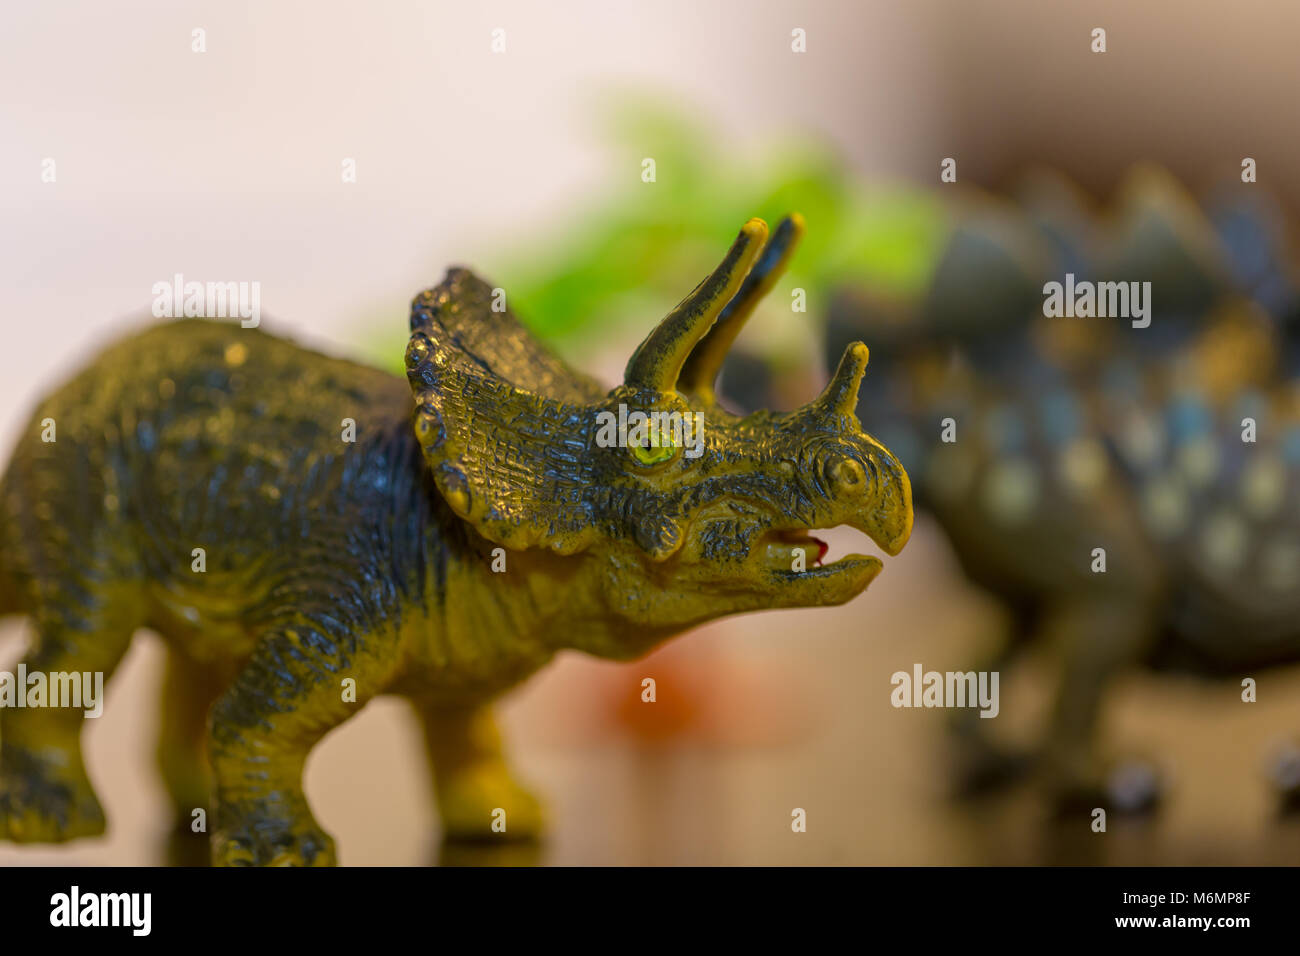 Close up photograph of small toy Triceratops in foreground focused with toy tree and stegosaurus in background out - Stock Image